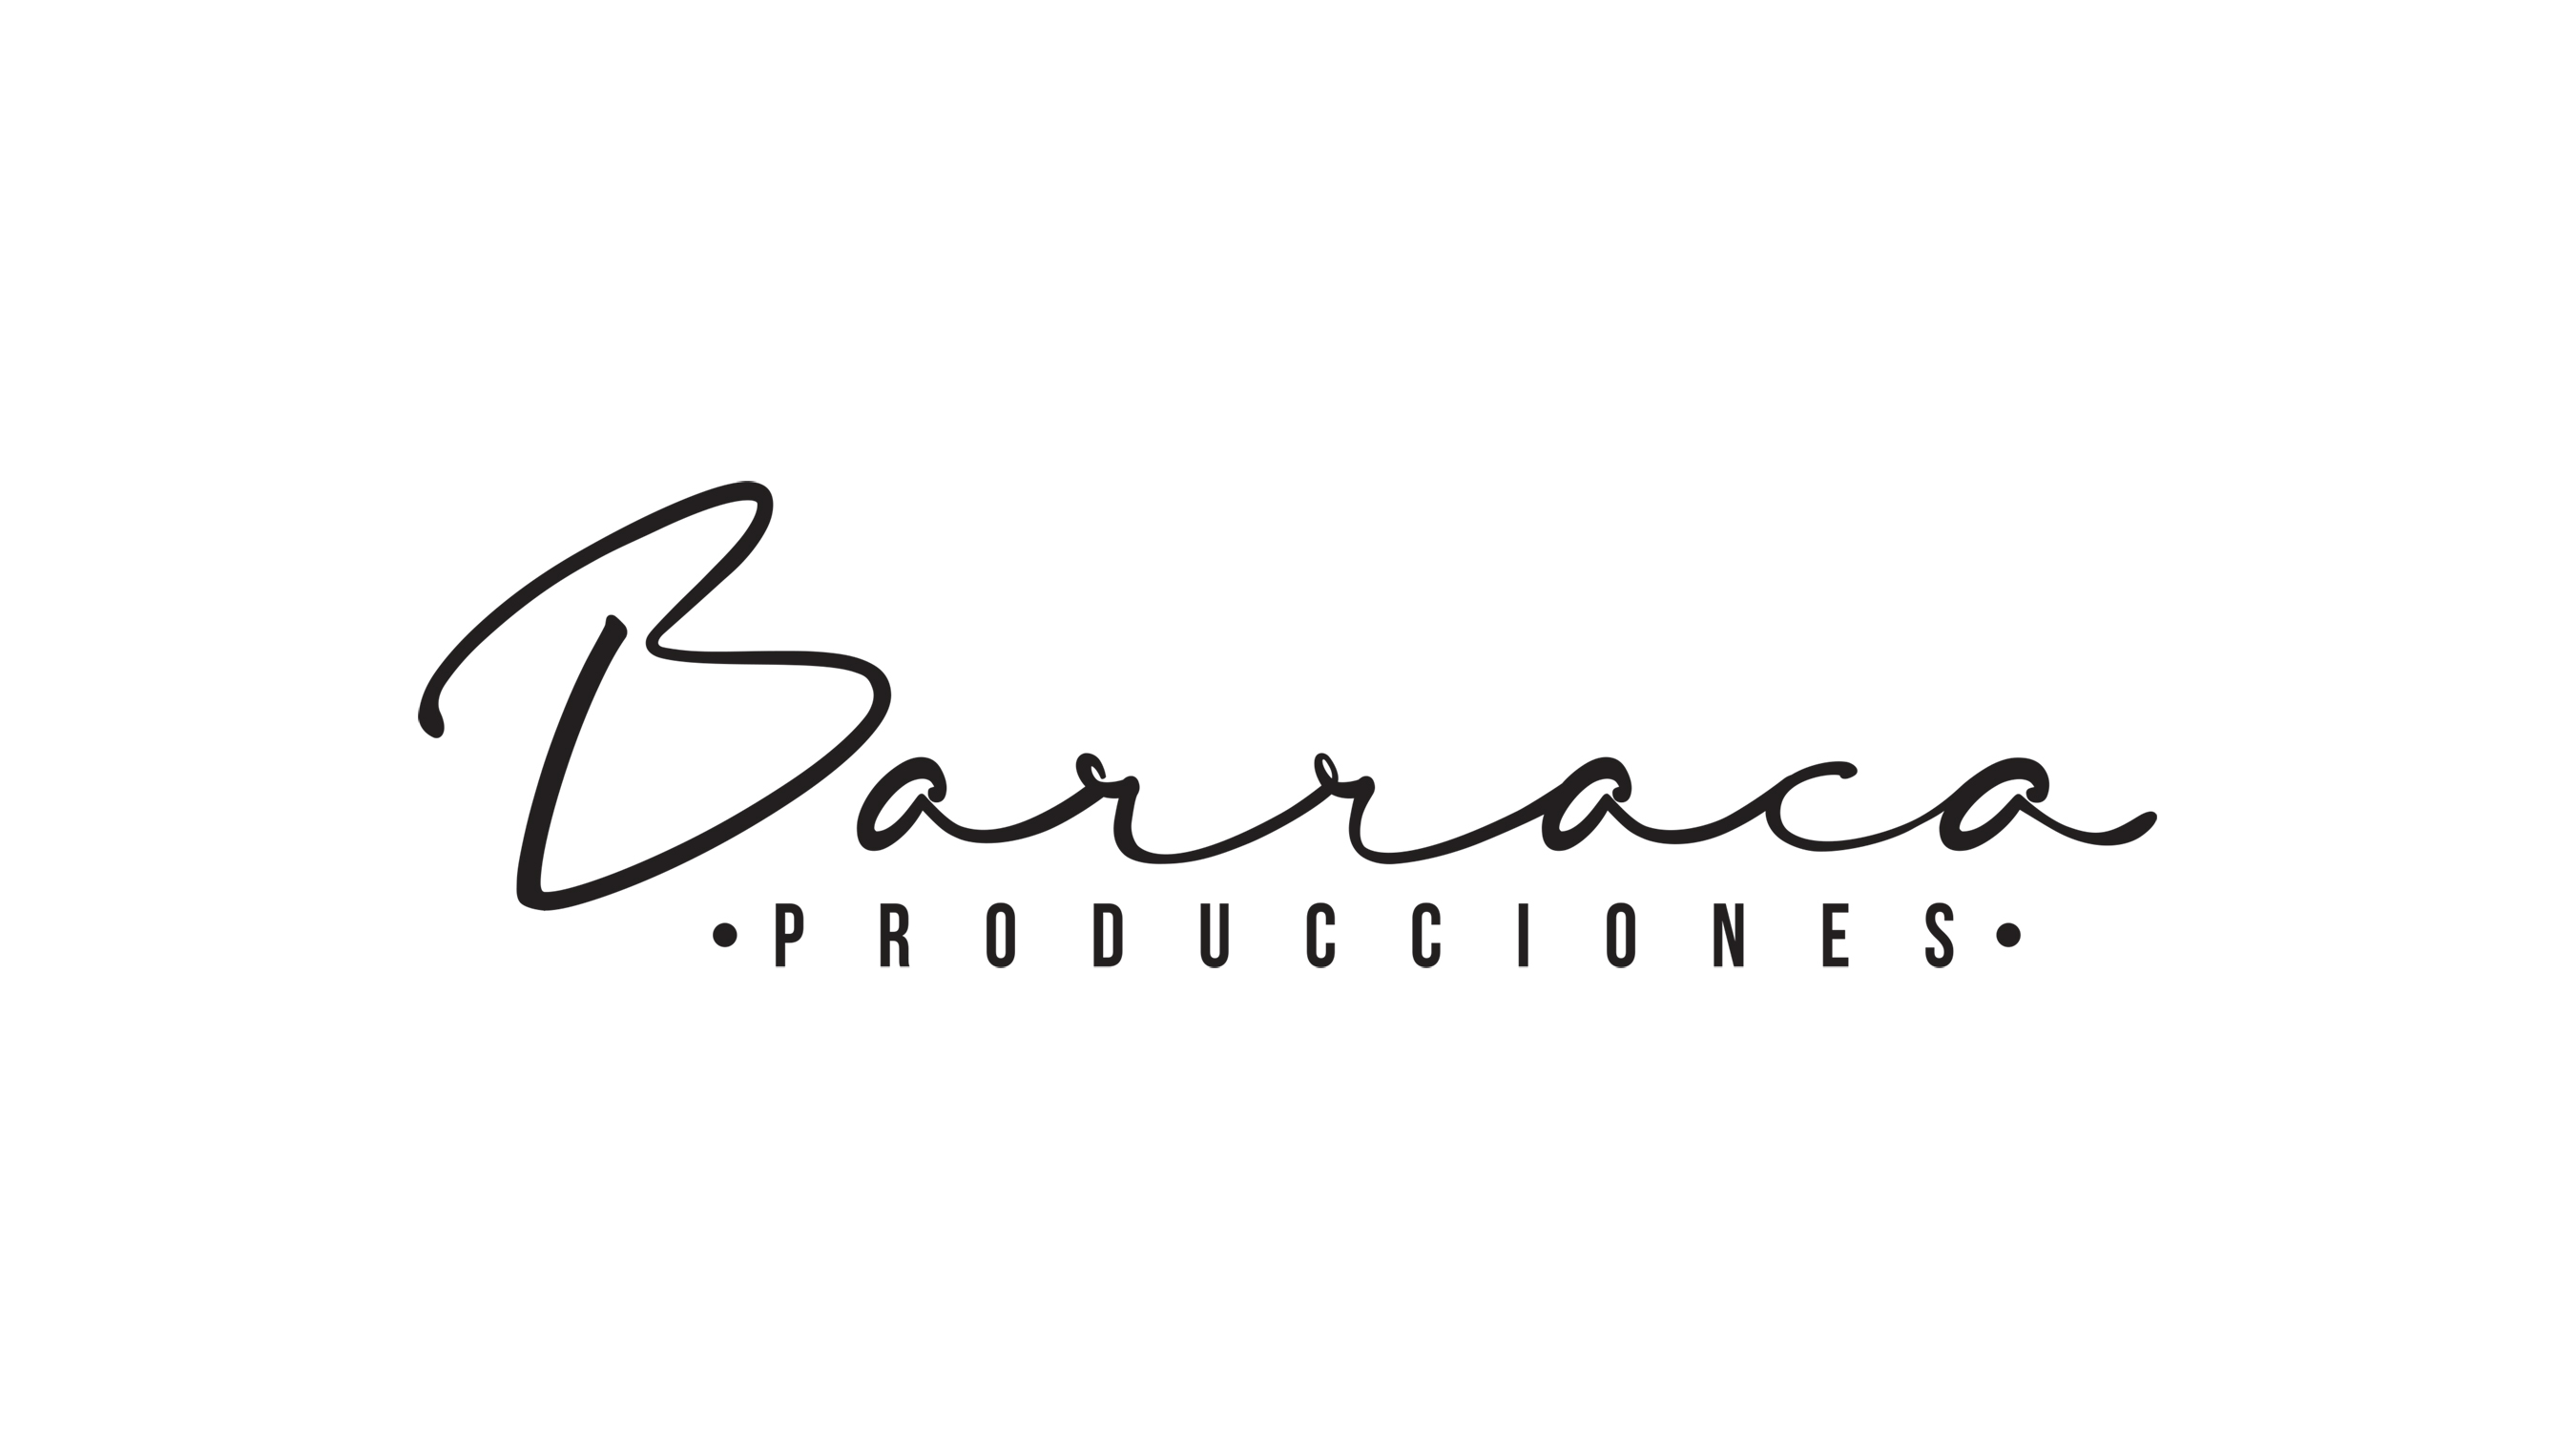 Barraca Producciones is a Mexican company that specializes in television and film production, distribution, financing and marketing. Barraca Producciones is 100 percent women-owned company.